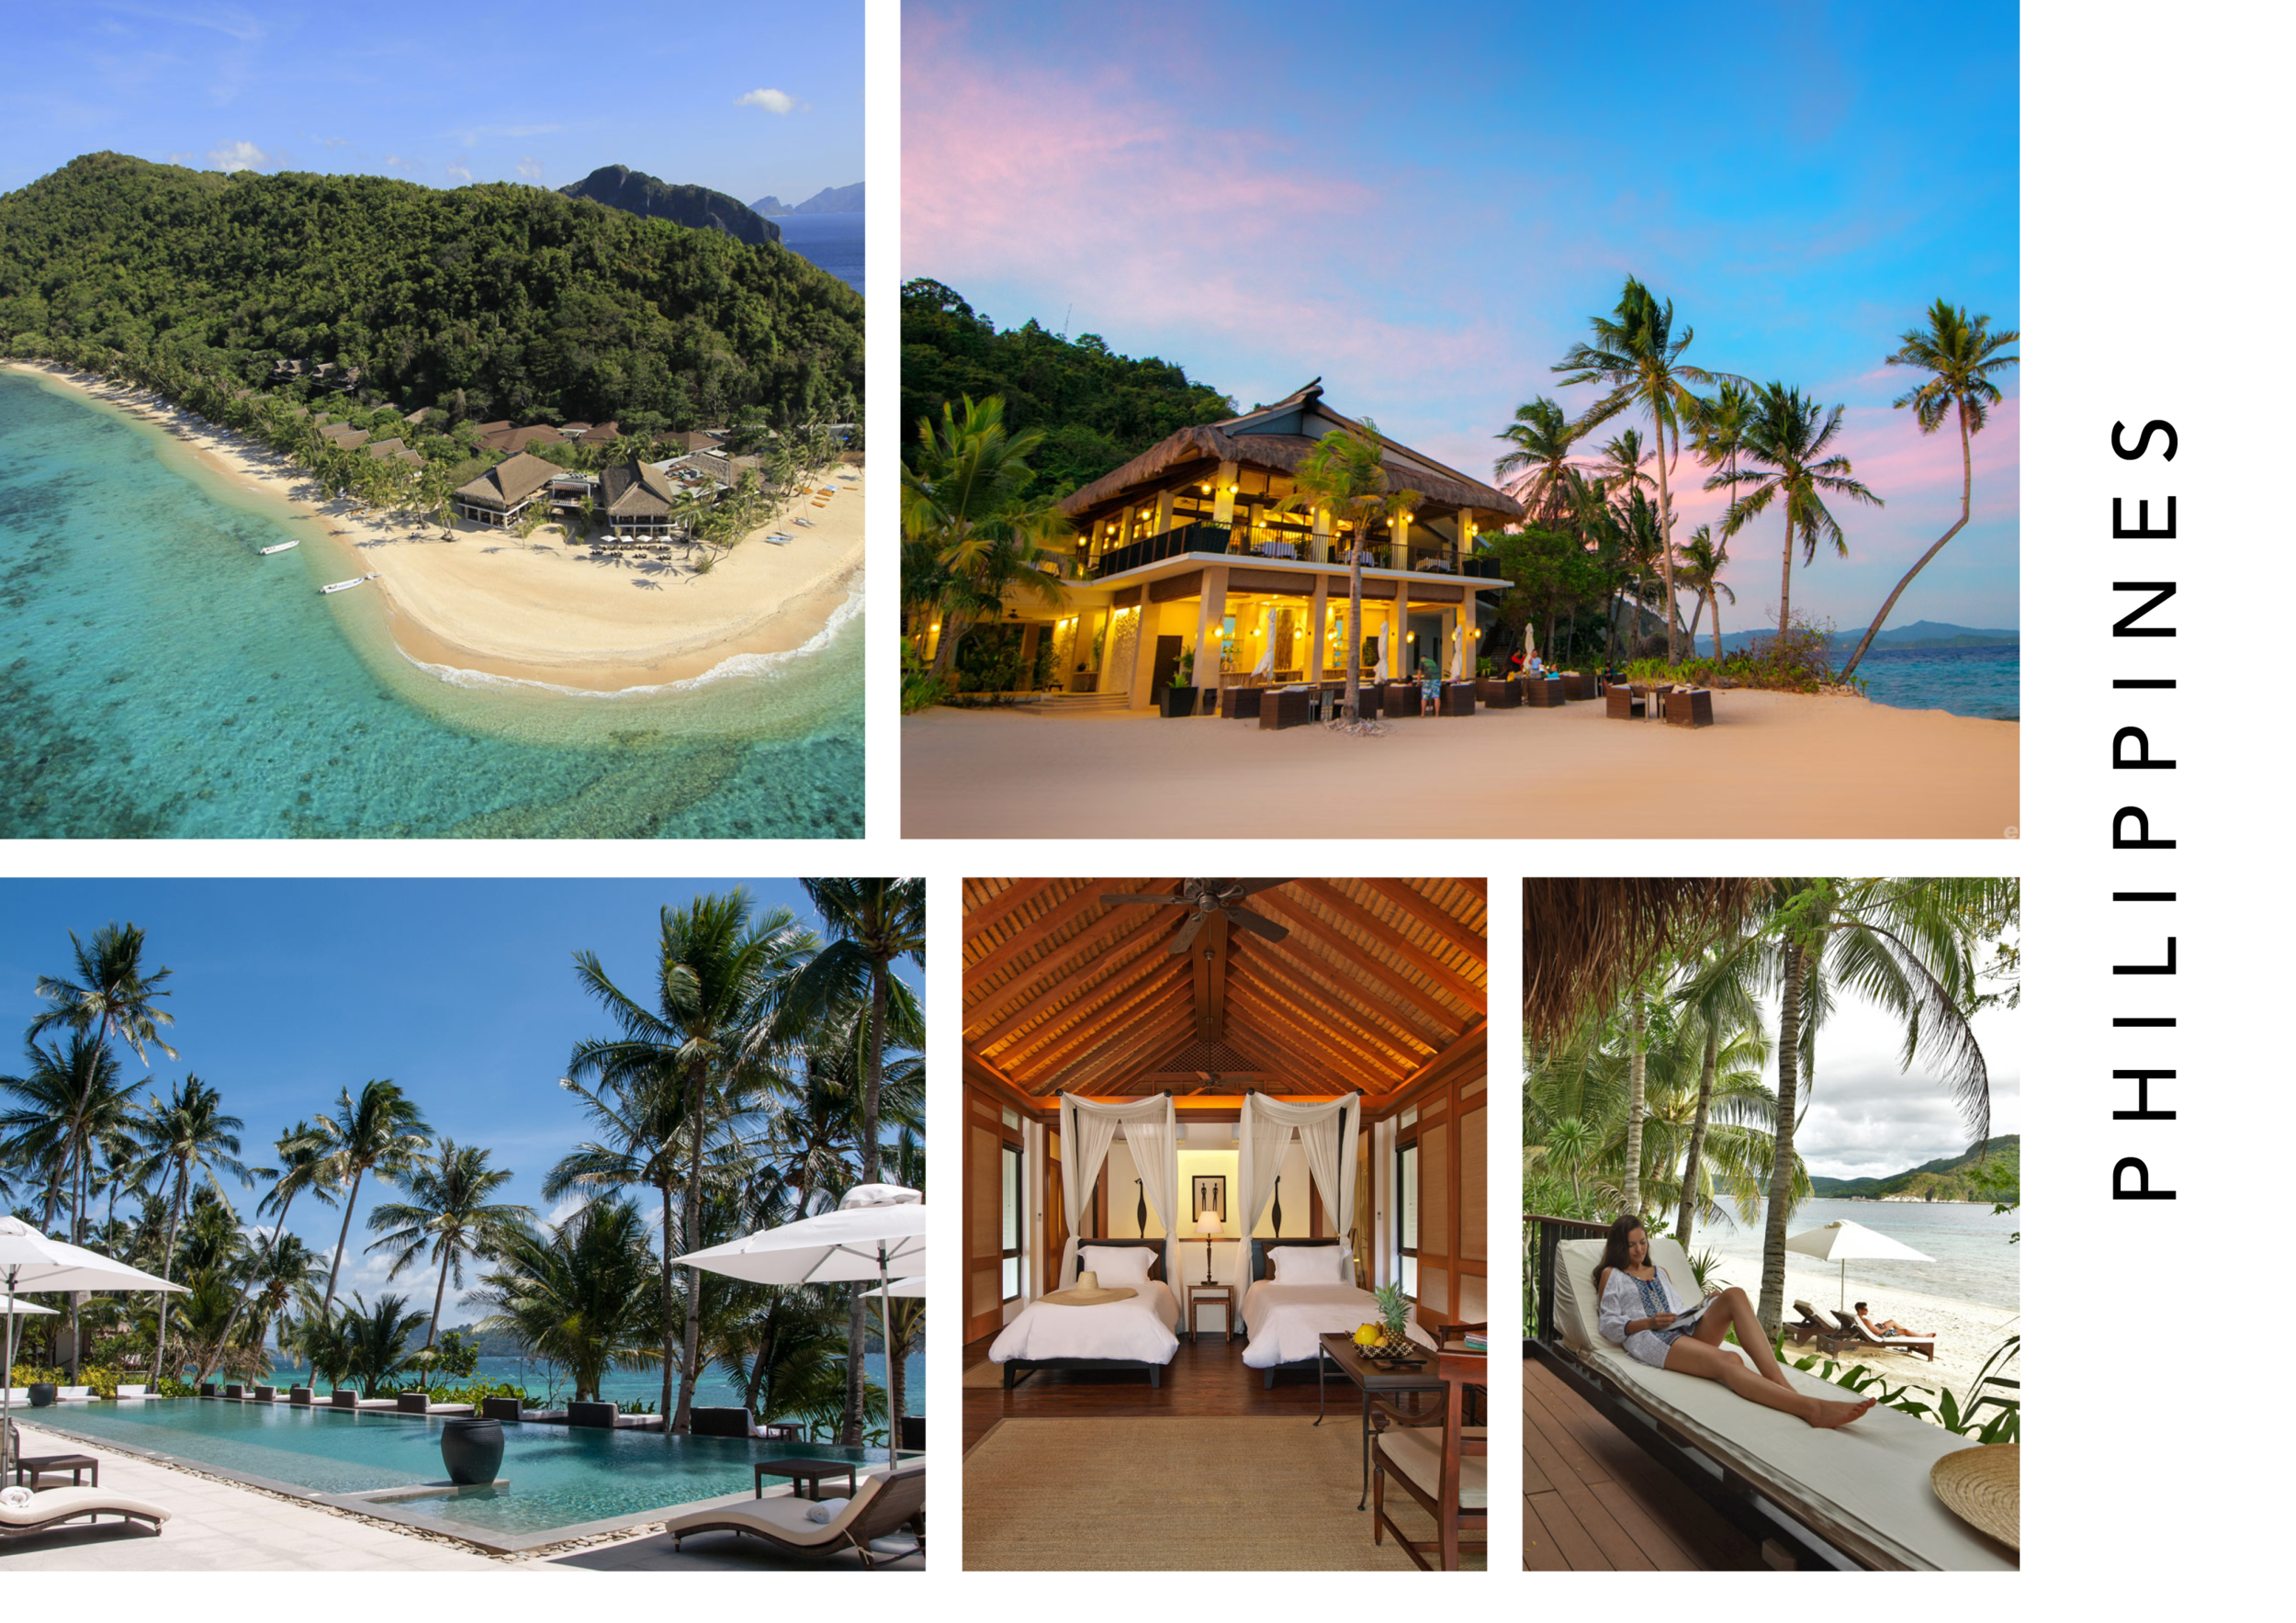 Images from elnidoresorts.com